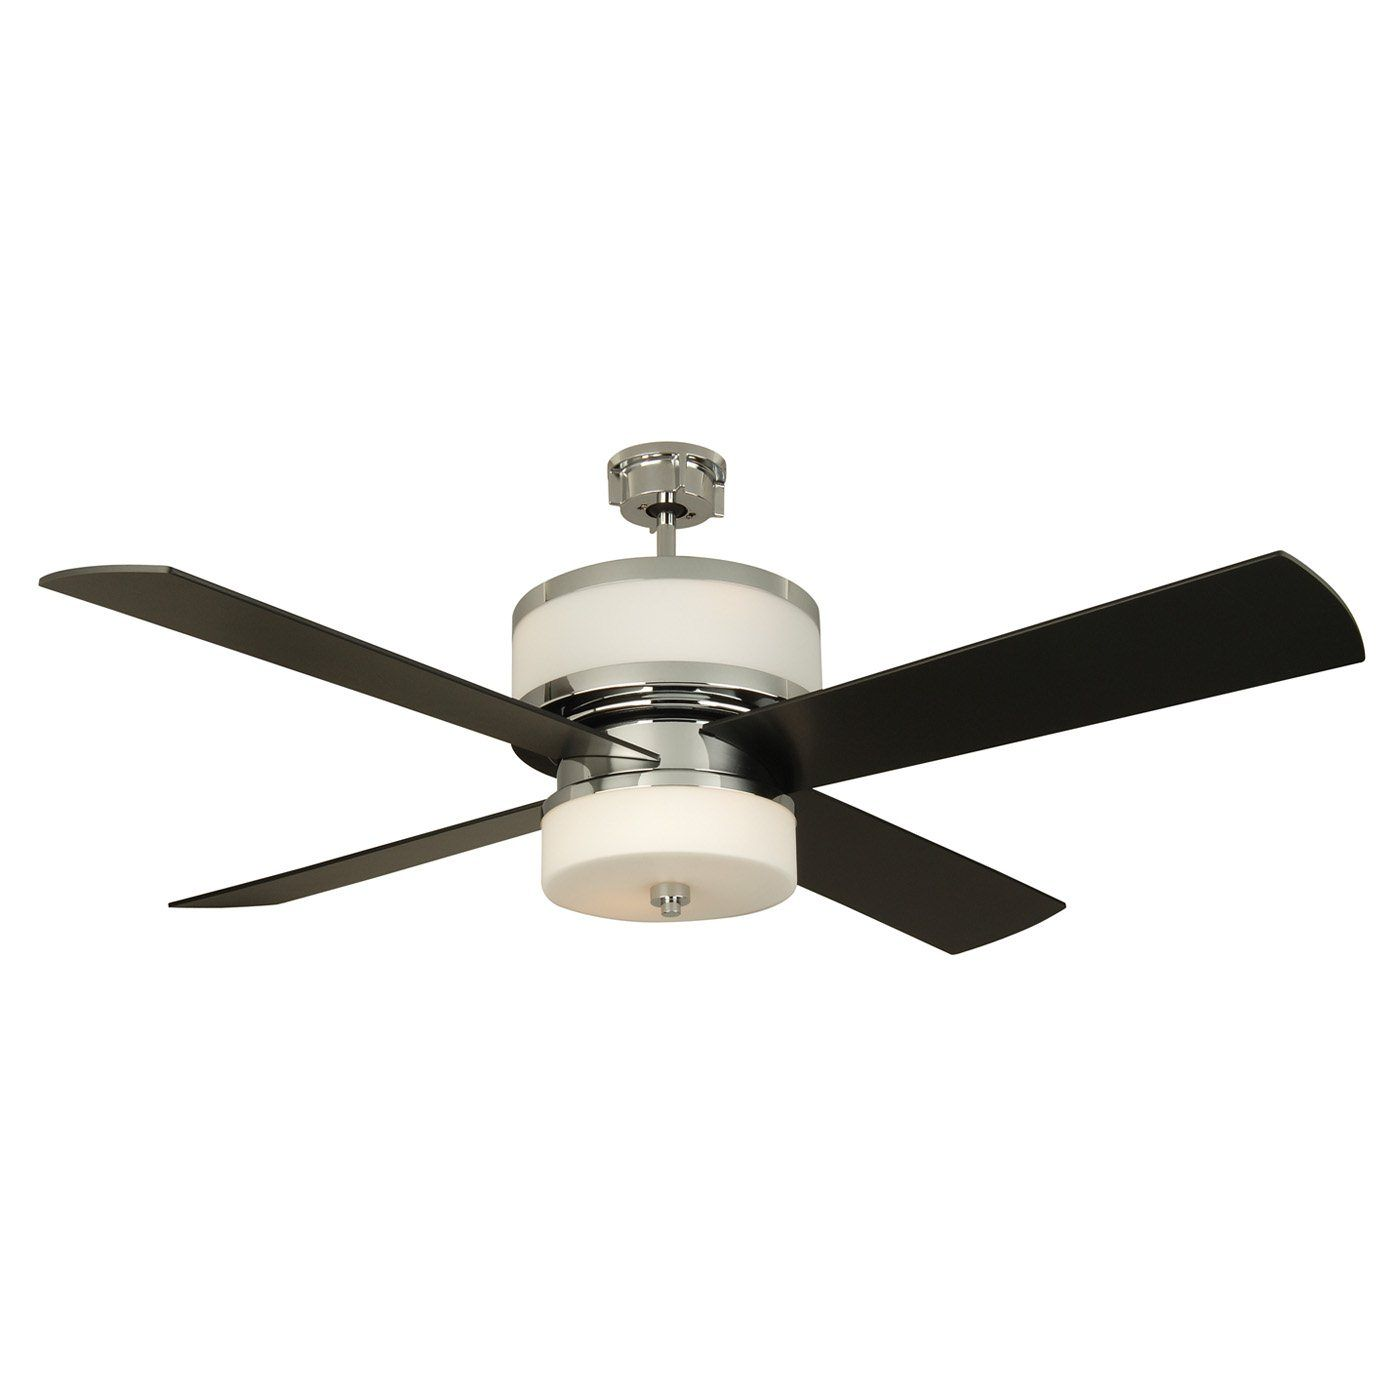 Shop Craftmade MO56 7 Light 56 in Midoro Ceiling Fan at ATG Stores